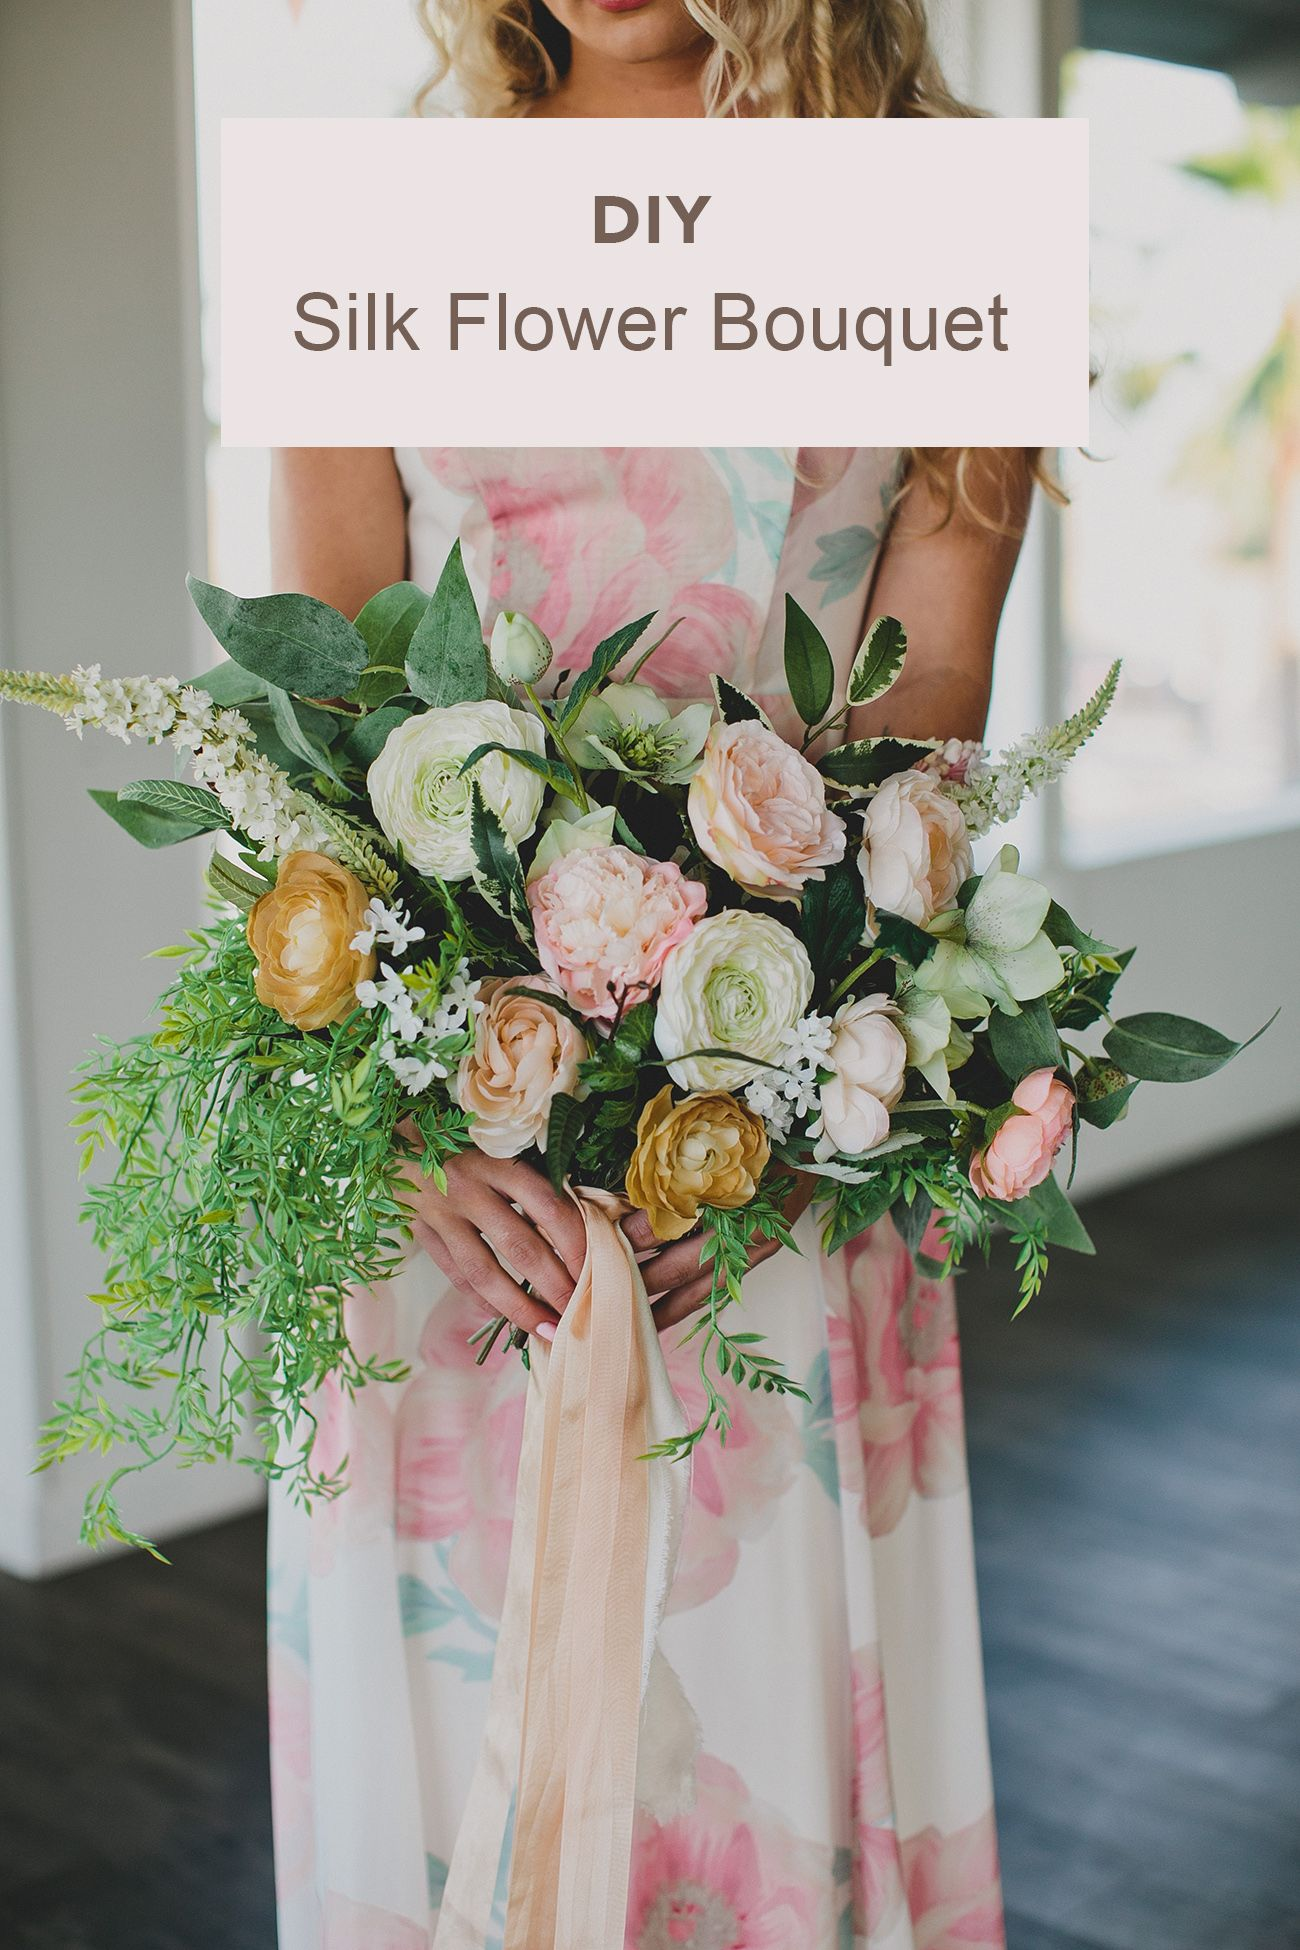 DIY Silk Flower Bouquet for an Elopement Wedding